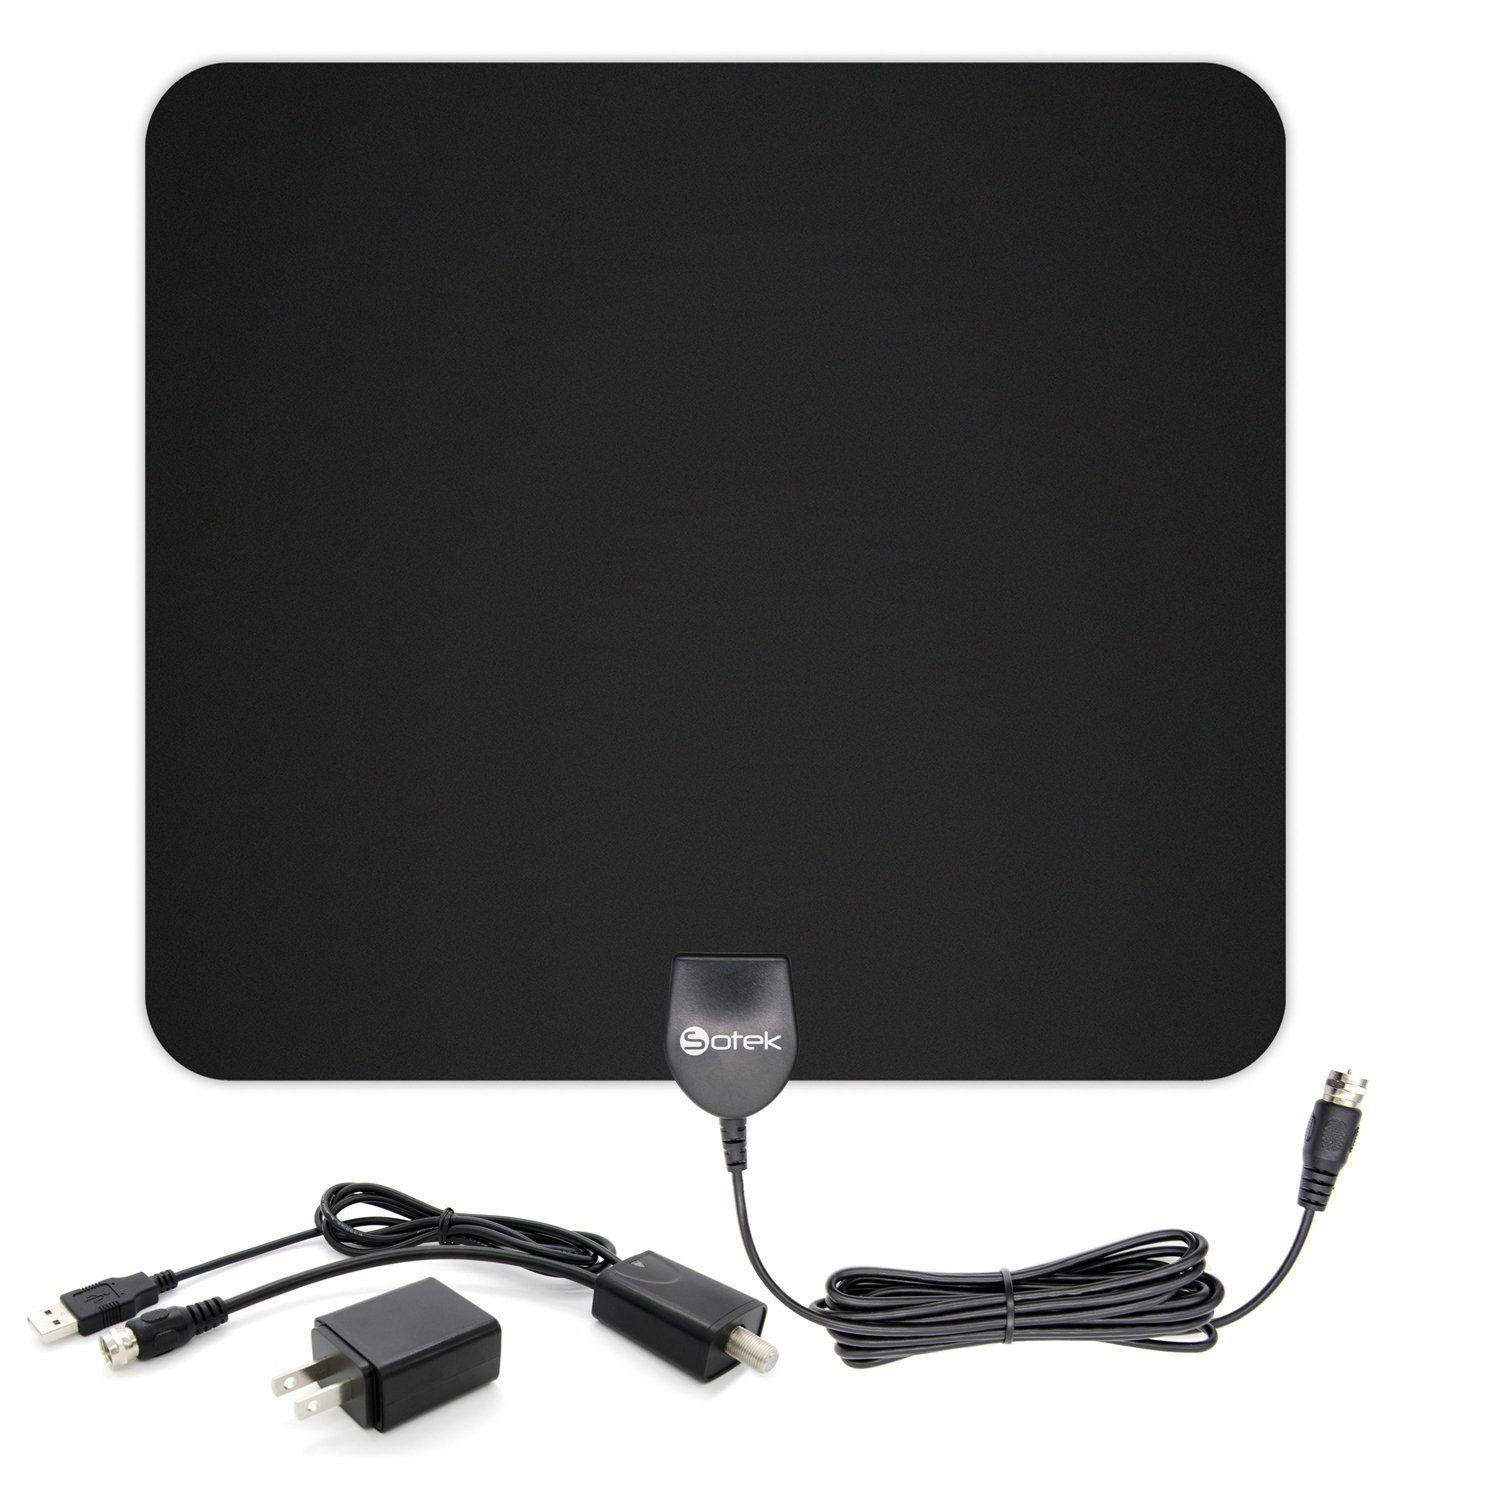 Indoor HDTV Antenna - Sotek TV Antenna 50 Miles Range with Detachable Amplifier Booster USB Power